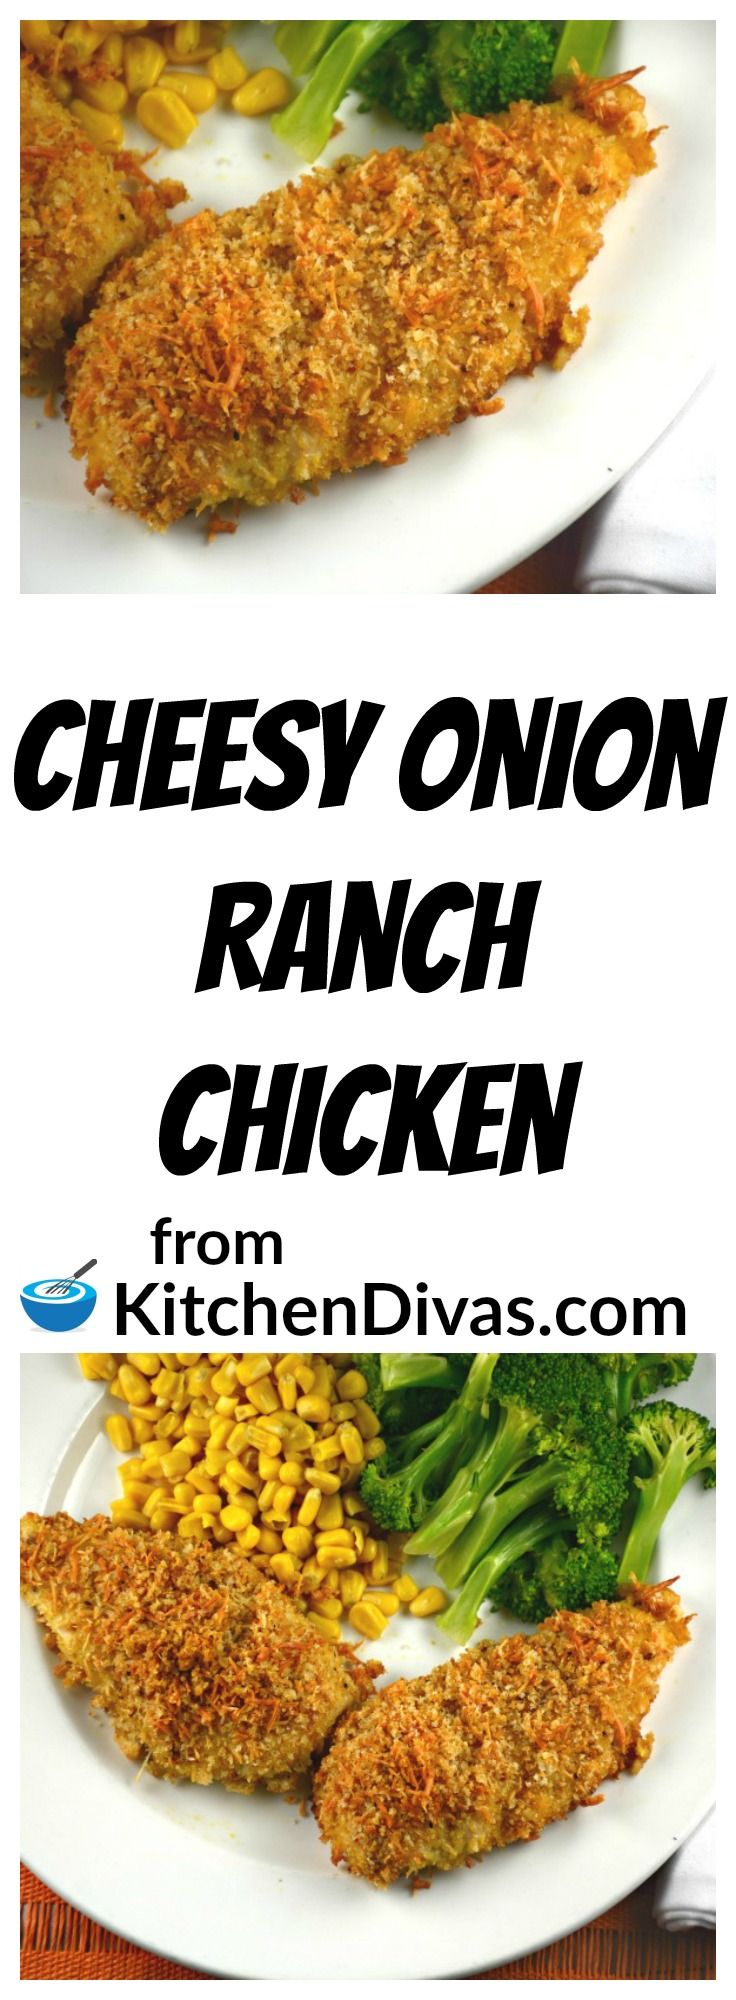 This chicken recipe is delicious! Cheesy Onion Ranch Chicken is an easy way to prepare and serve chicken breast any night of the week!